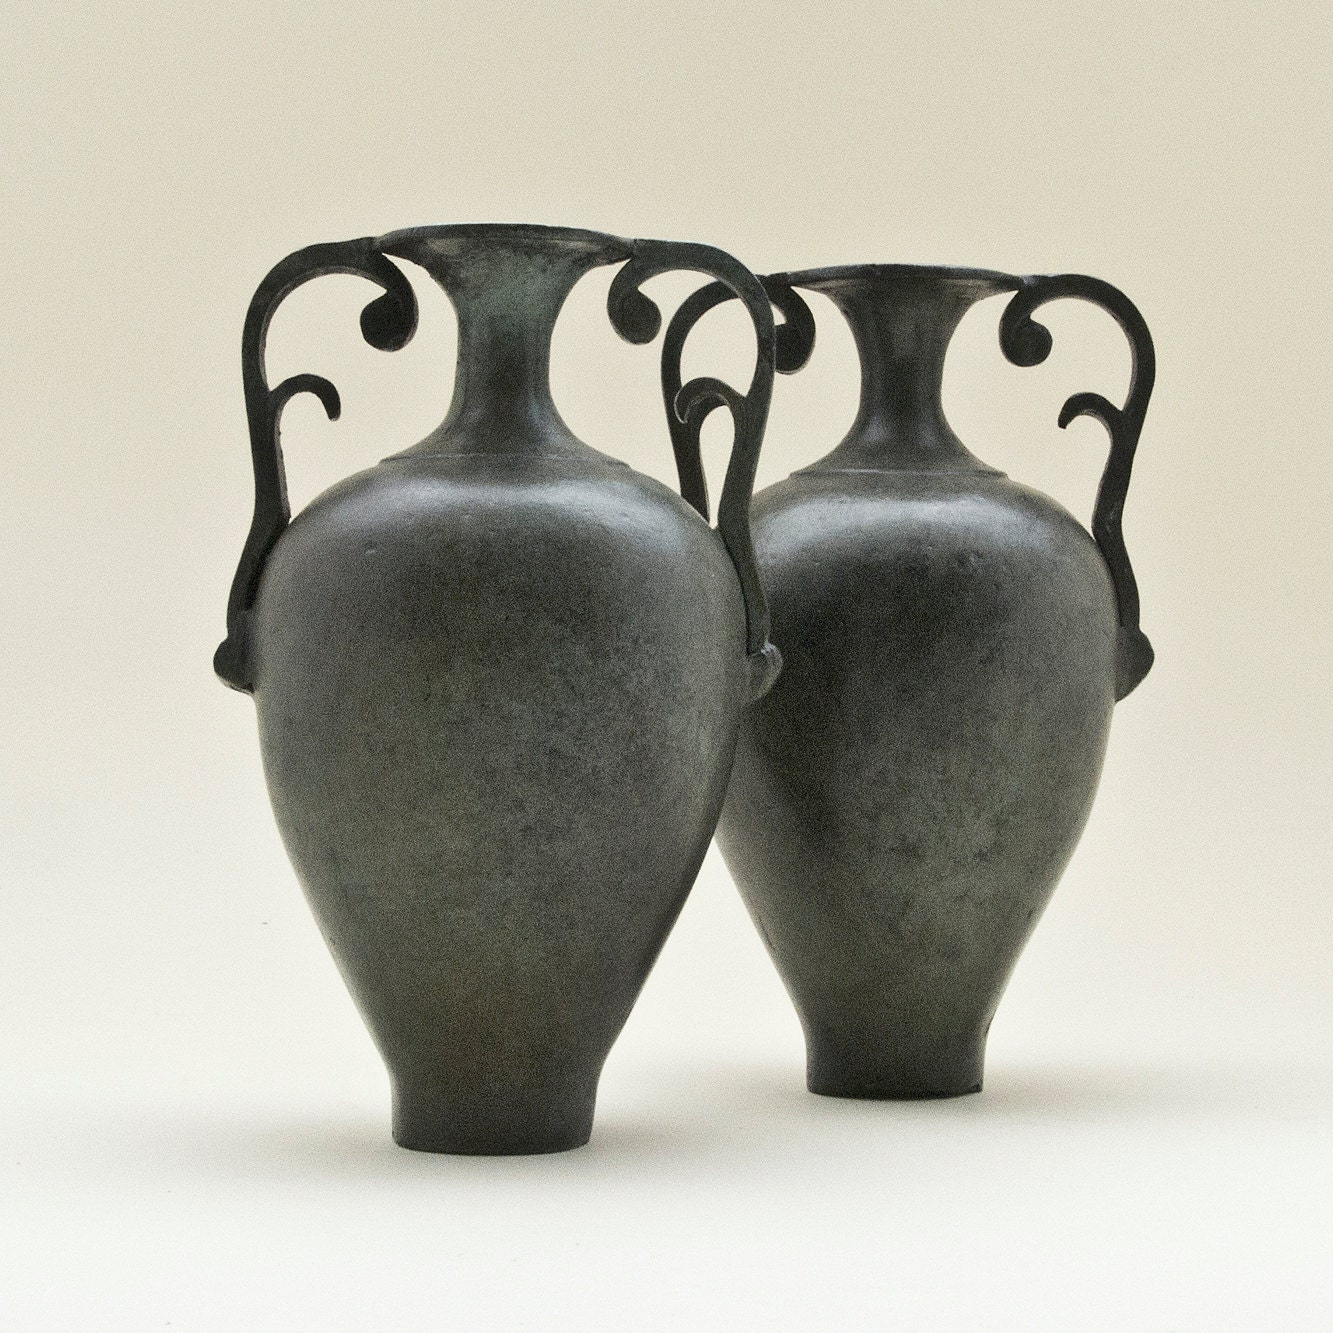 amphora greek bronze vessel with handles. Black Bedroom Furniture Sets. Home Design Ideas